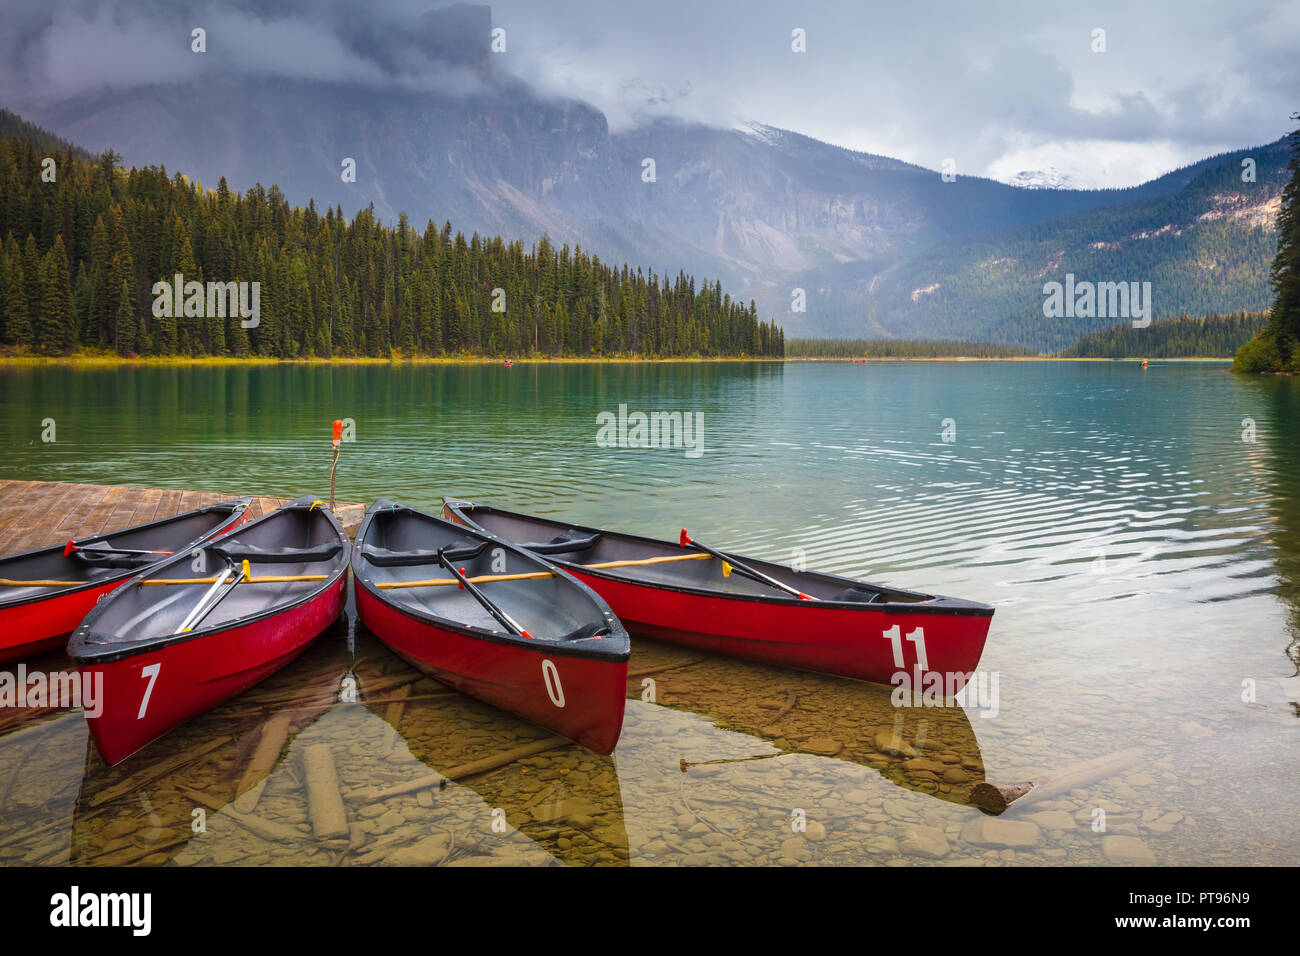 Emerald Lake in Yoho National Park, British Columbia, Canada.   Yoho National Park is located in the Canadian Rocky Mountains along the western slope  - Stock Image